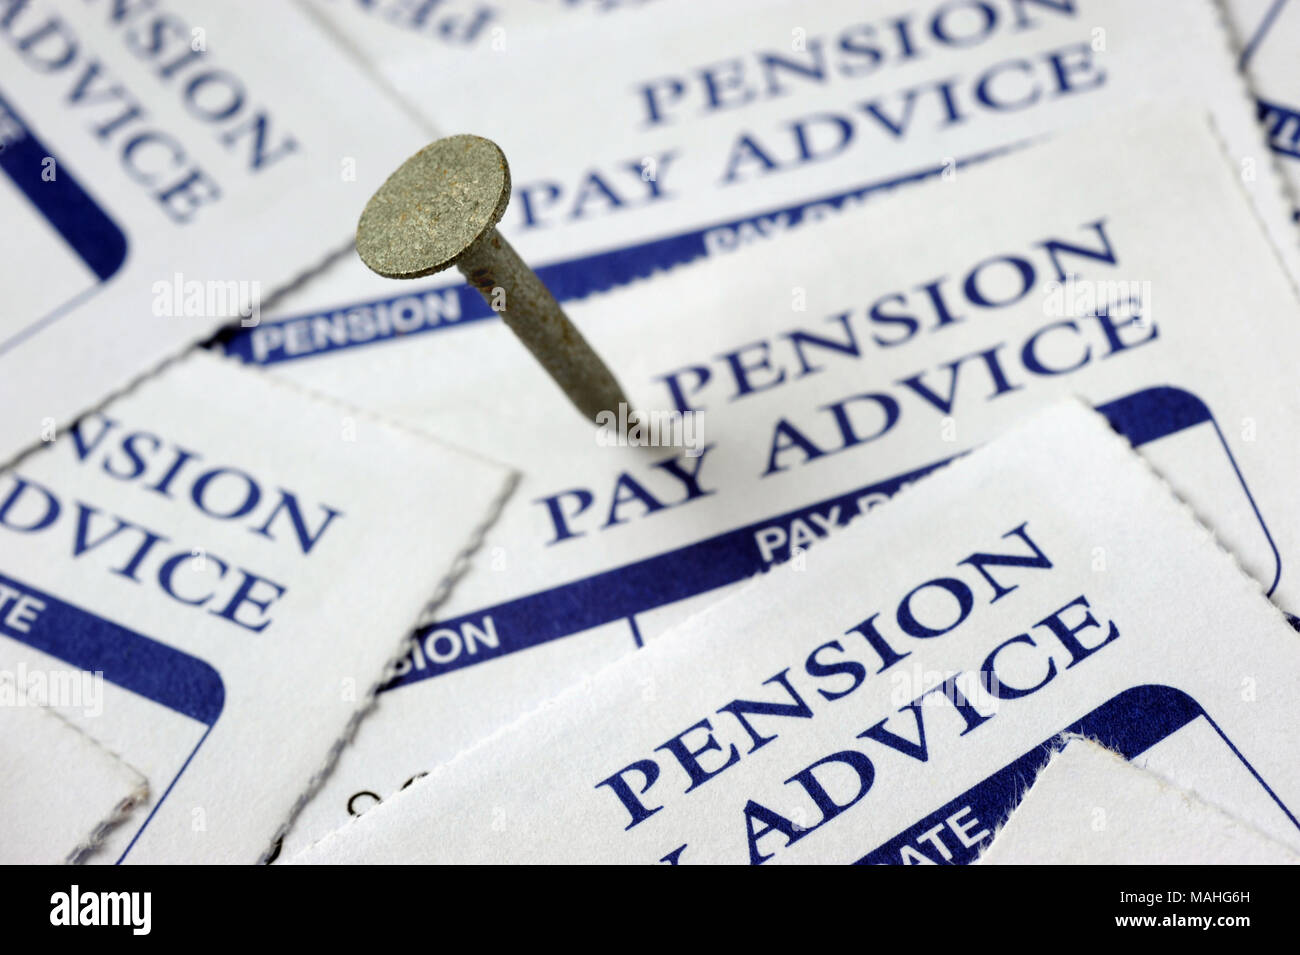 NAIL IN PENSION PAY ADVICE SLIPS RE COMPANY PENSIONS PRIVATE PENSIONS PENSIONERS ETC UK - Stock Image